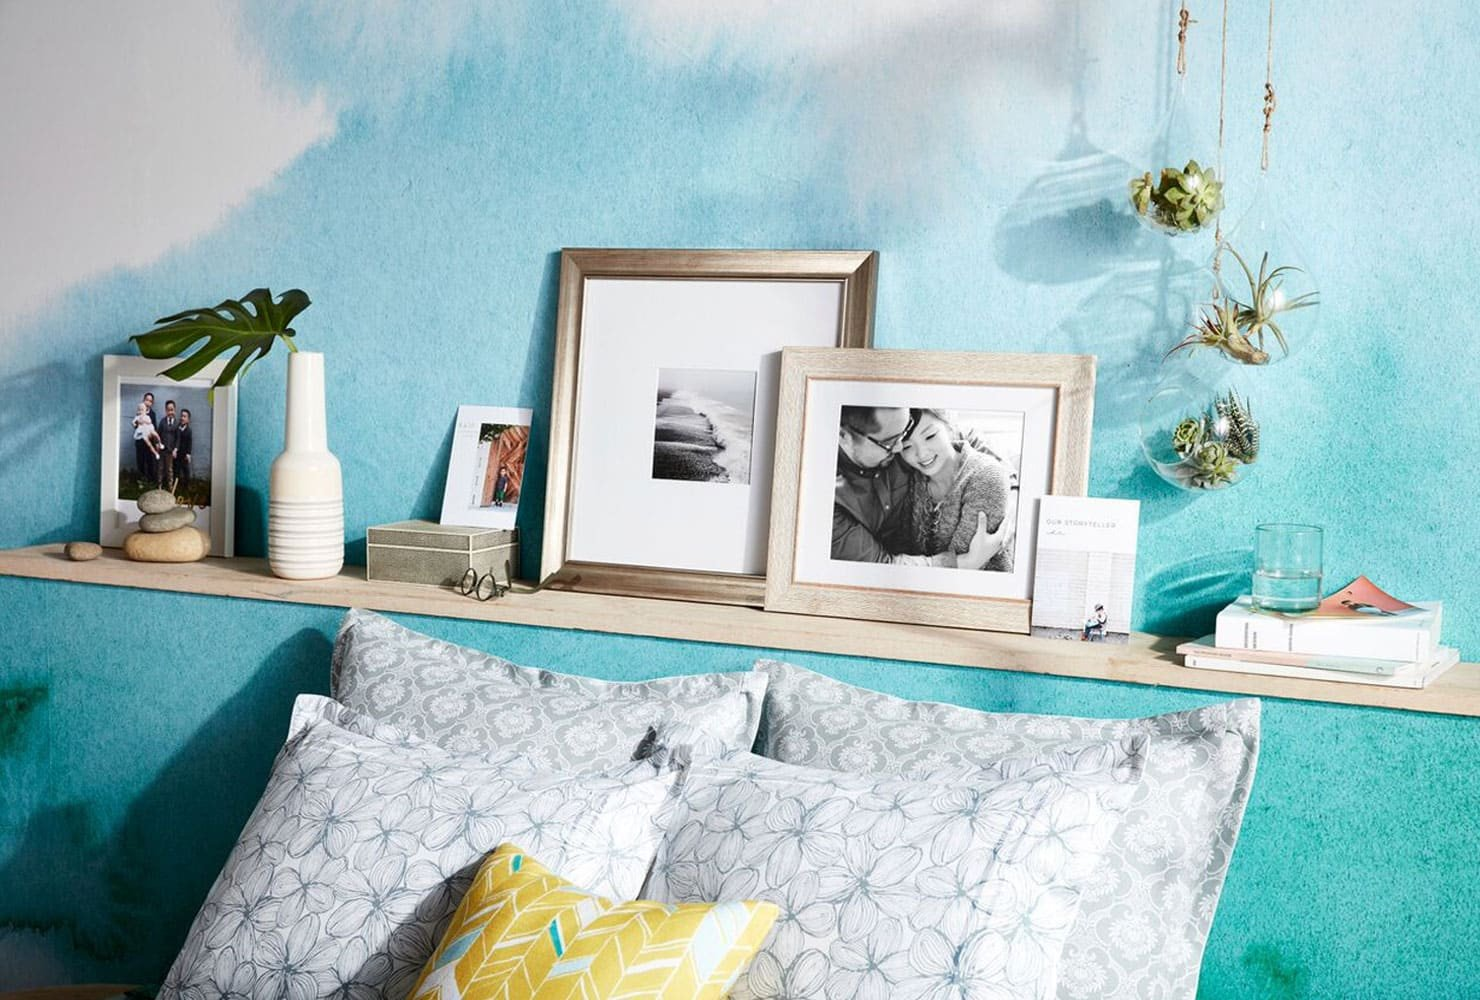 Diy Decor Ideas for Bedroom Best Of 24 Diy Bedroom Decor Ideas to Inspire You with Printables